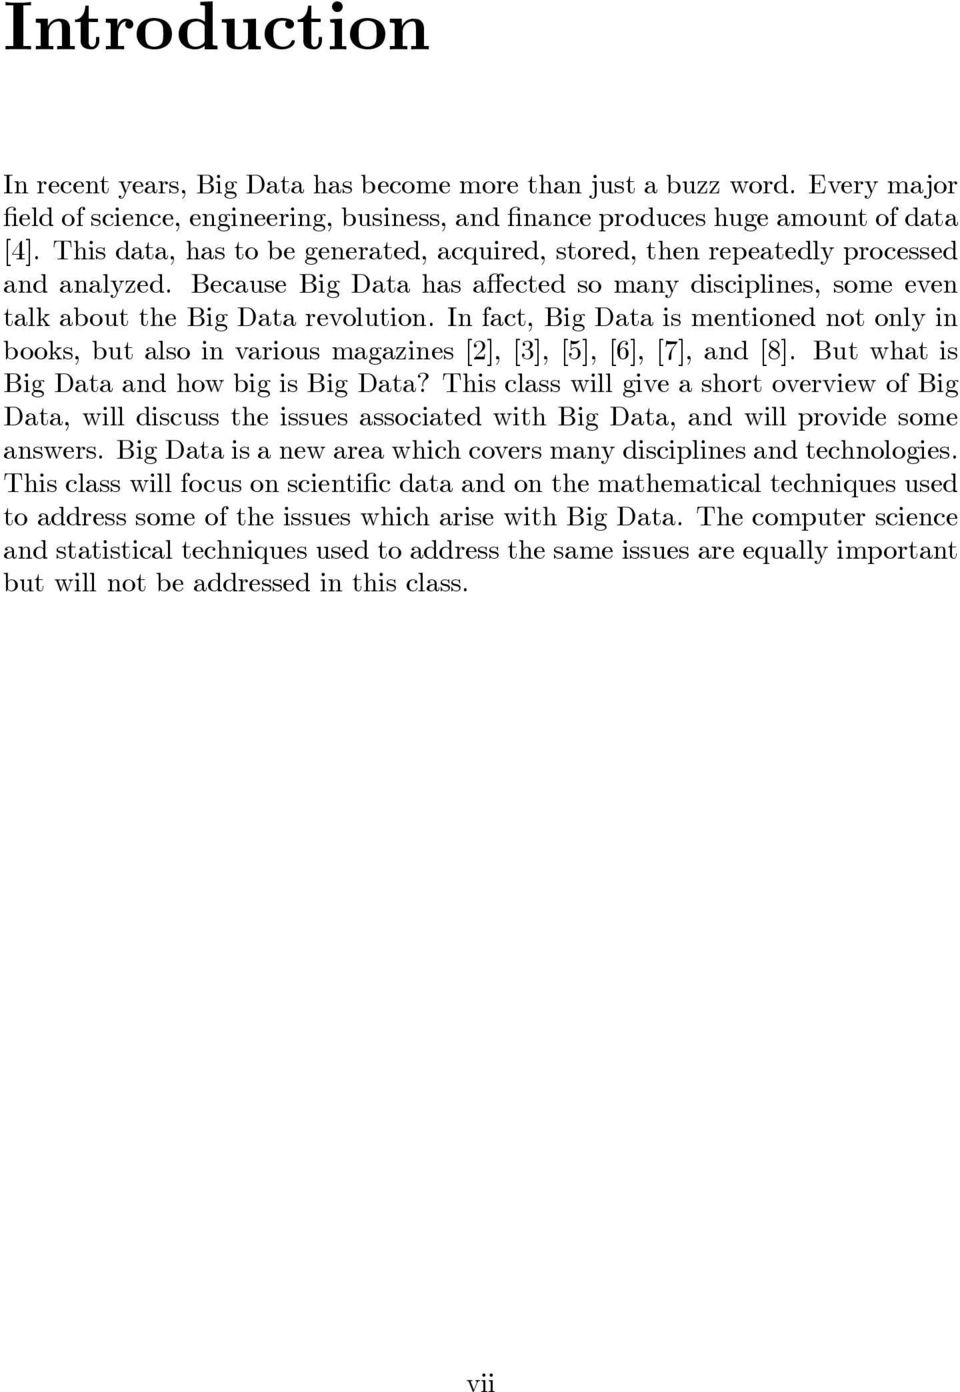 In fact, Big Data is mentioned not only in books, but also in various magazines [2], [3], [5], [6], [7], and [8]. But what is Big Data and how big is Big Data?